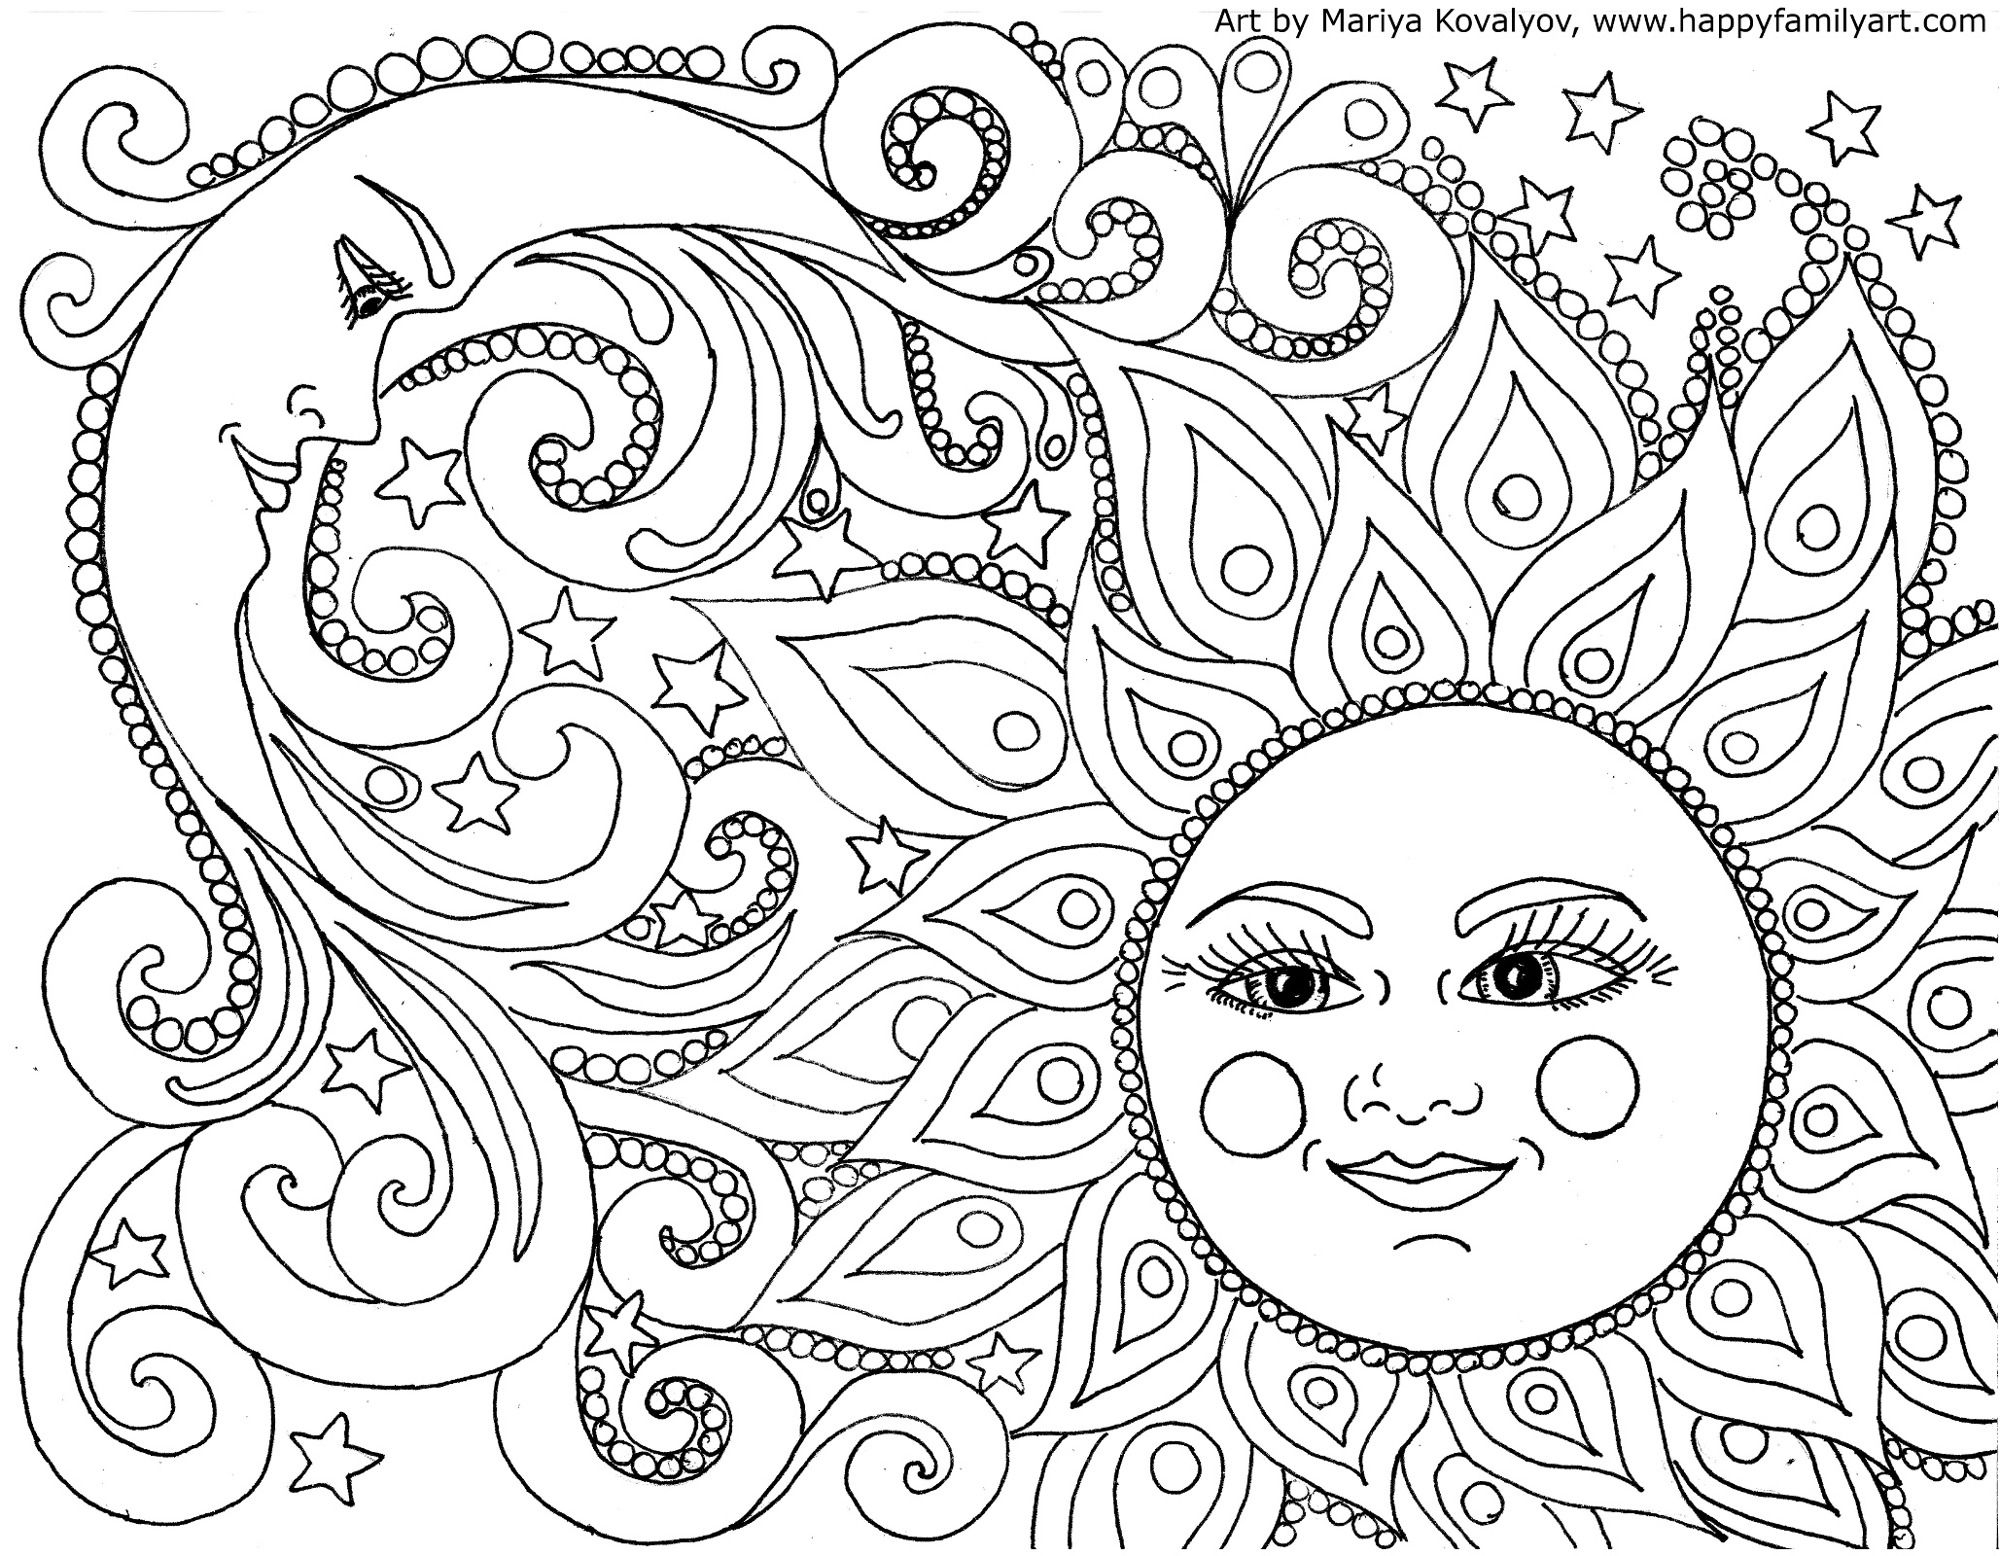 2000x1556 Awesome I Made Many Great Fun And Original Coloring Pages Color